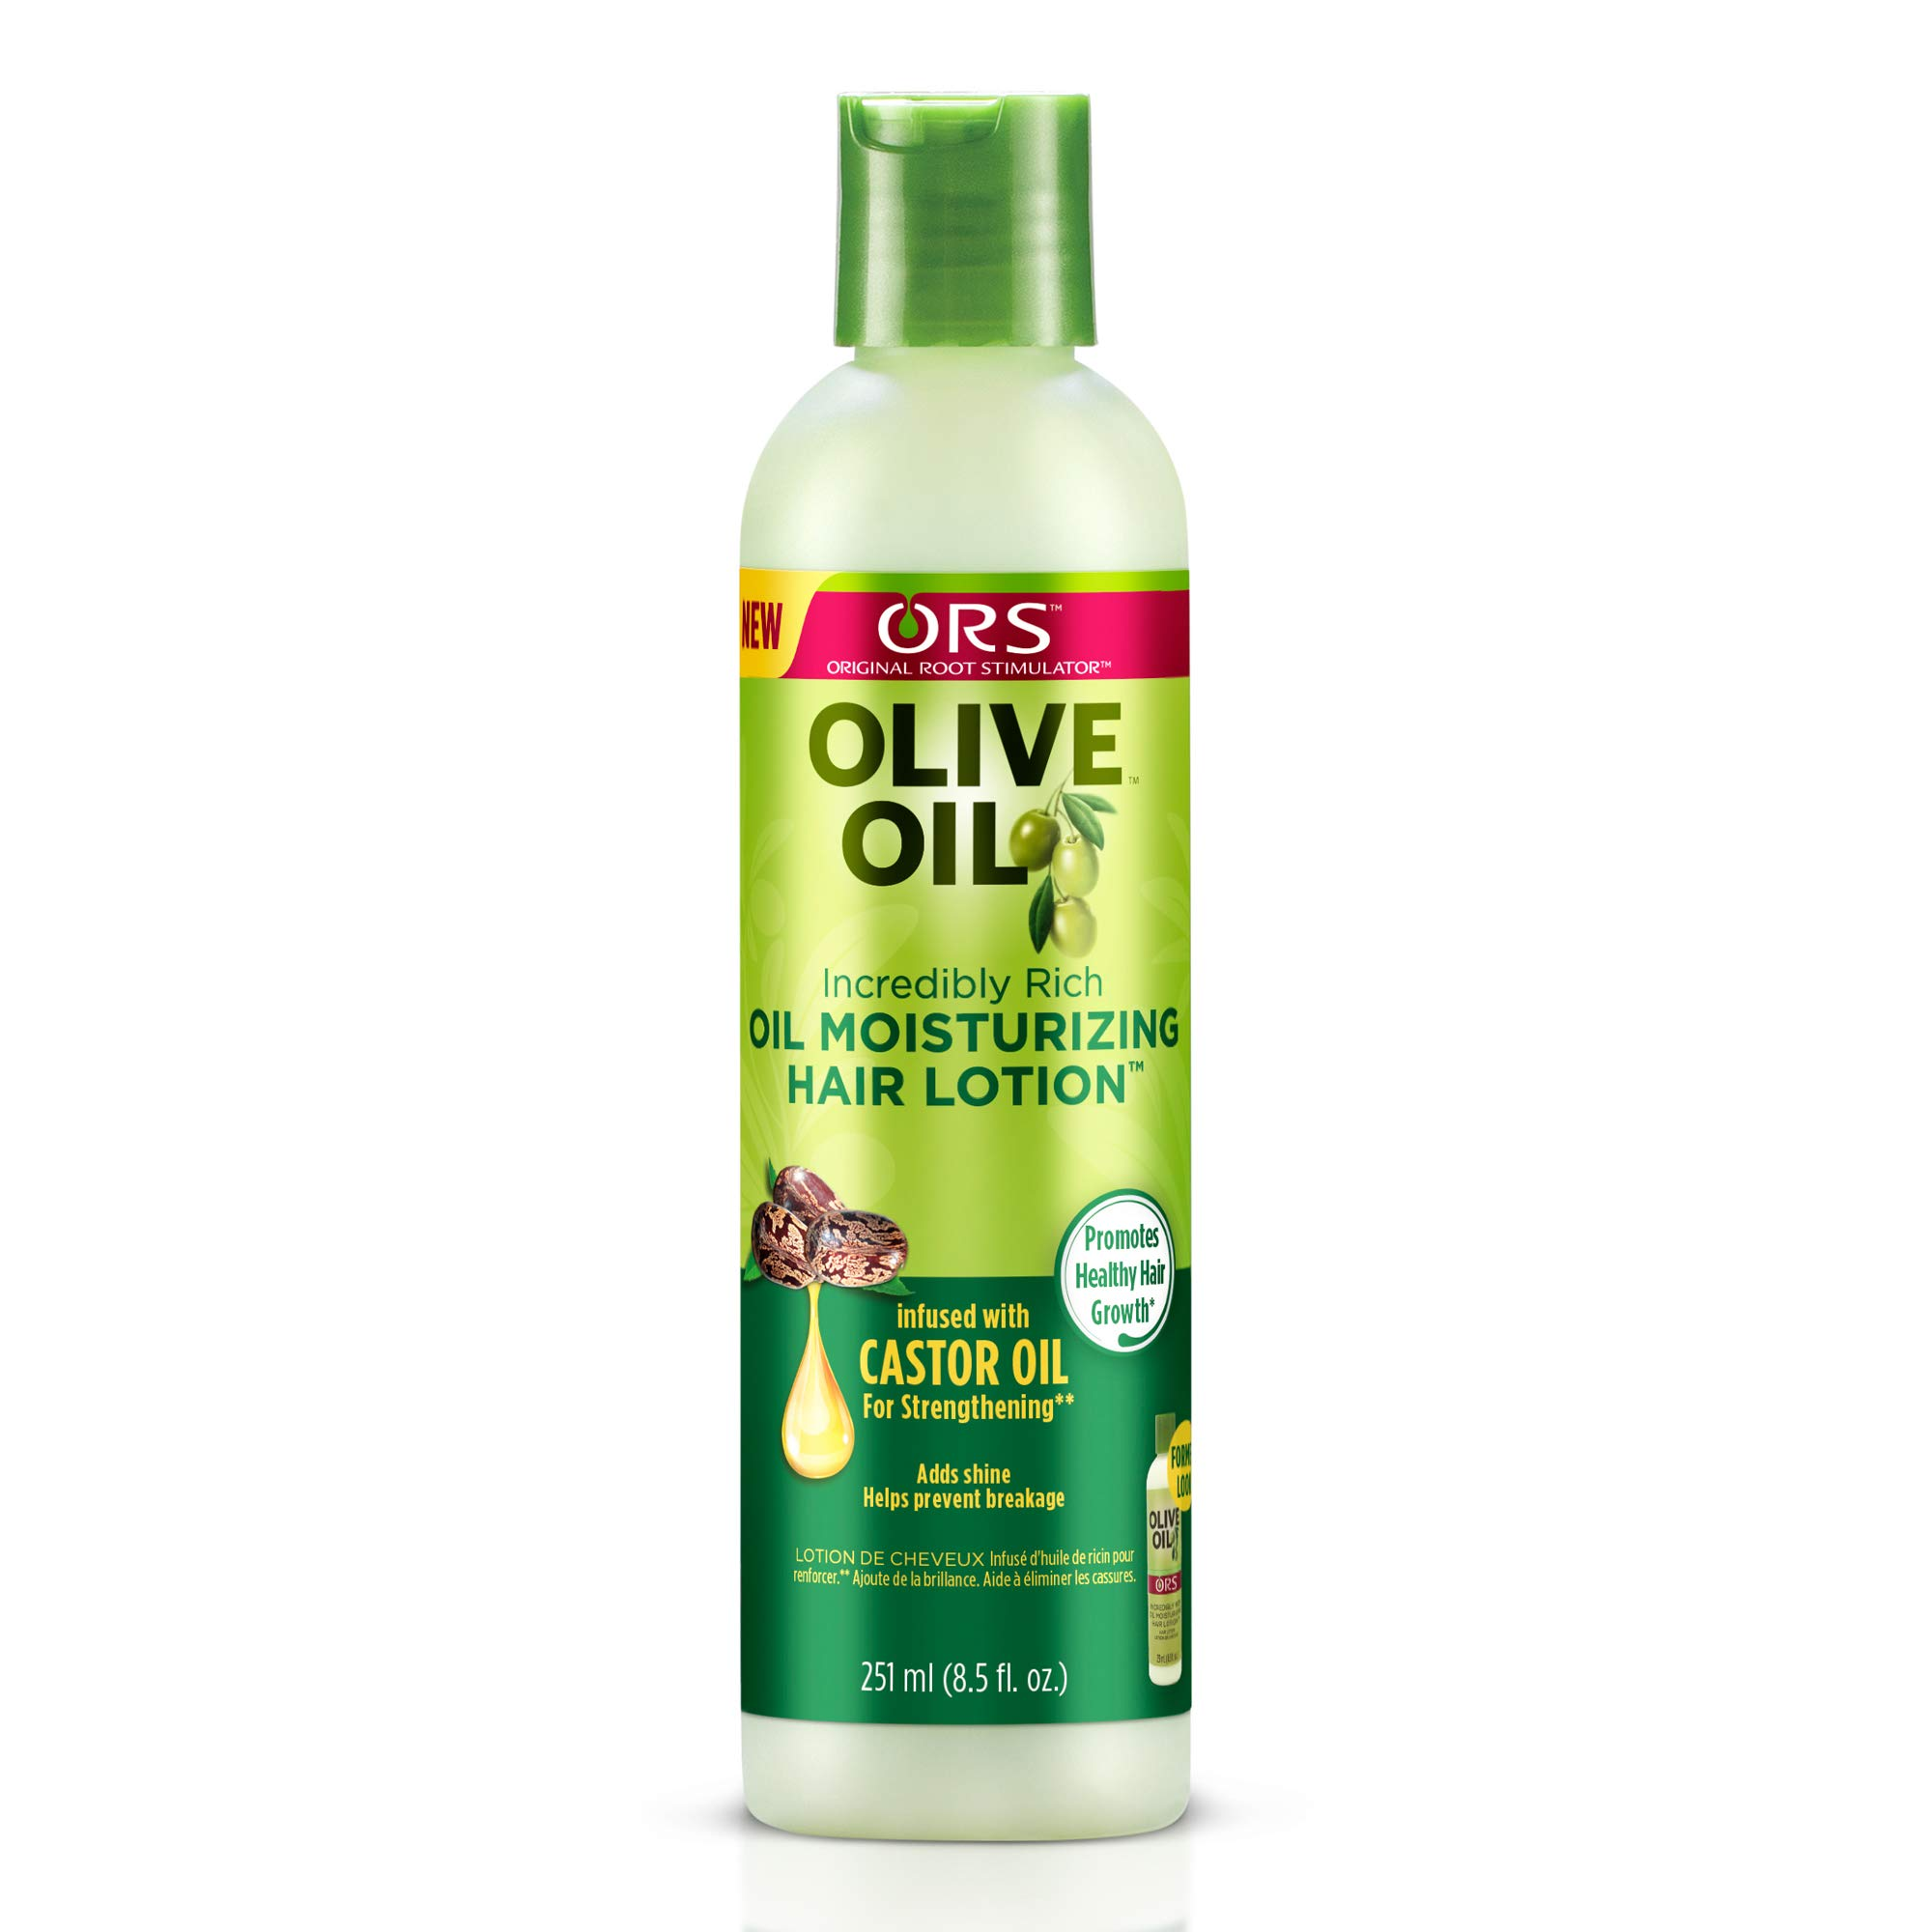 ORS Olive Oil Incredibly Rich Oil Moisturizing Hair Lotion 8.5 oz (Pack of 12) by ORS Olive Oil